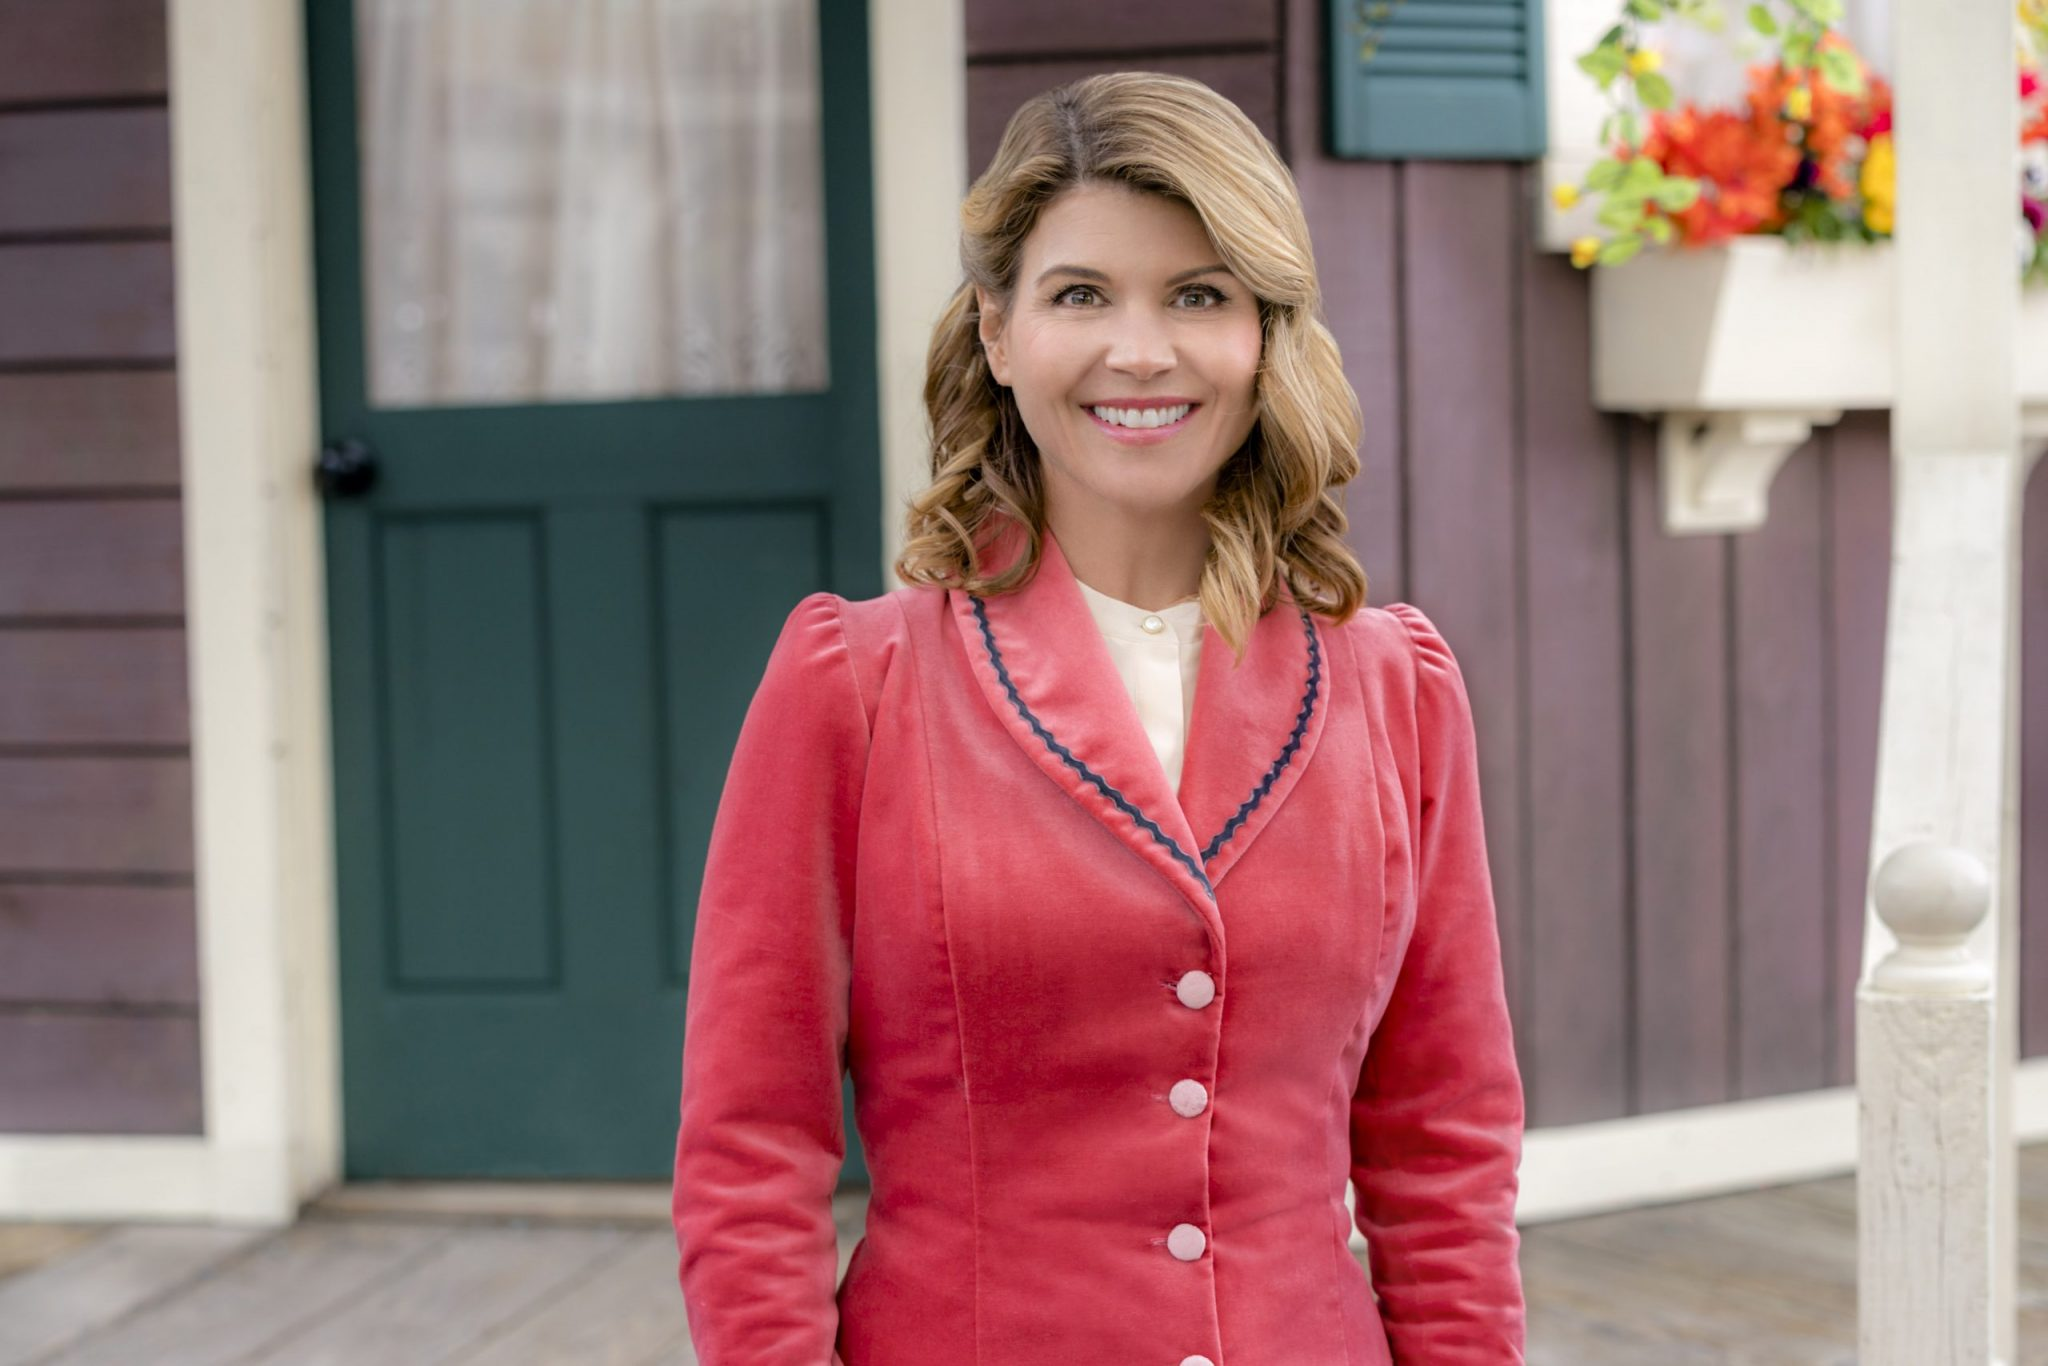 WCTH, Abigail, Photo: Lori Loughlin Credit: Copyright 2018 Crown Media United States LLC/Photographer: Ricardo Hubbs